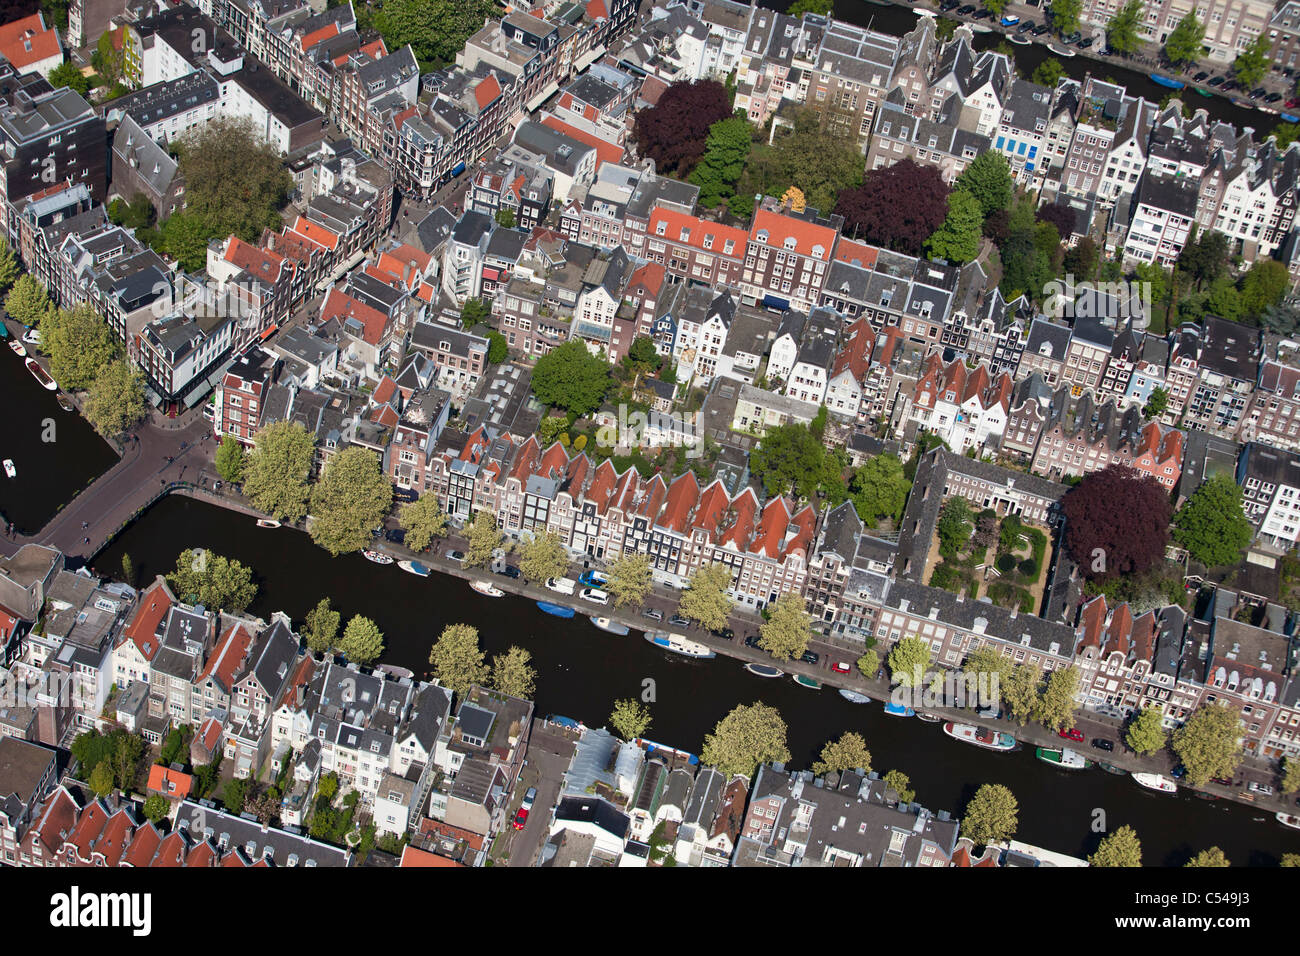 The Netherlands, Amsterdam, Aerial of canals and city centre. Unesco World Heritage Site. - Stock Image